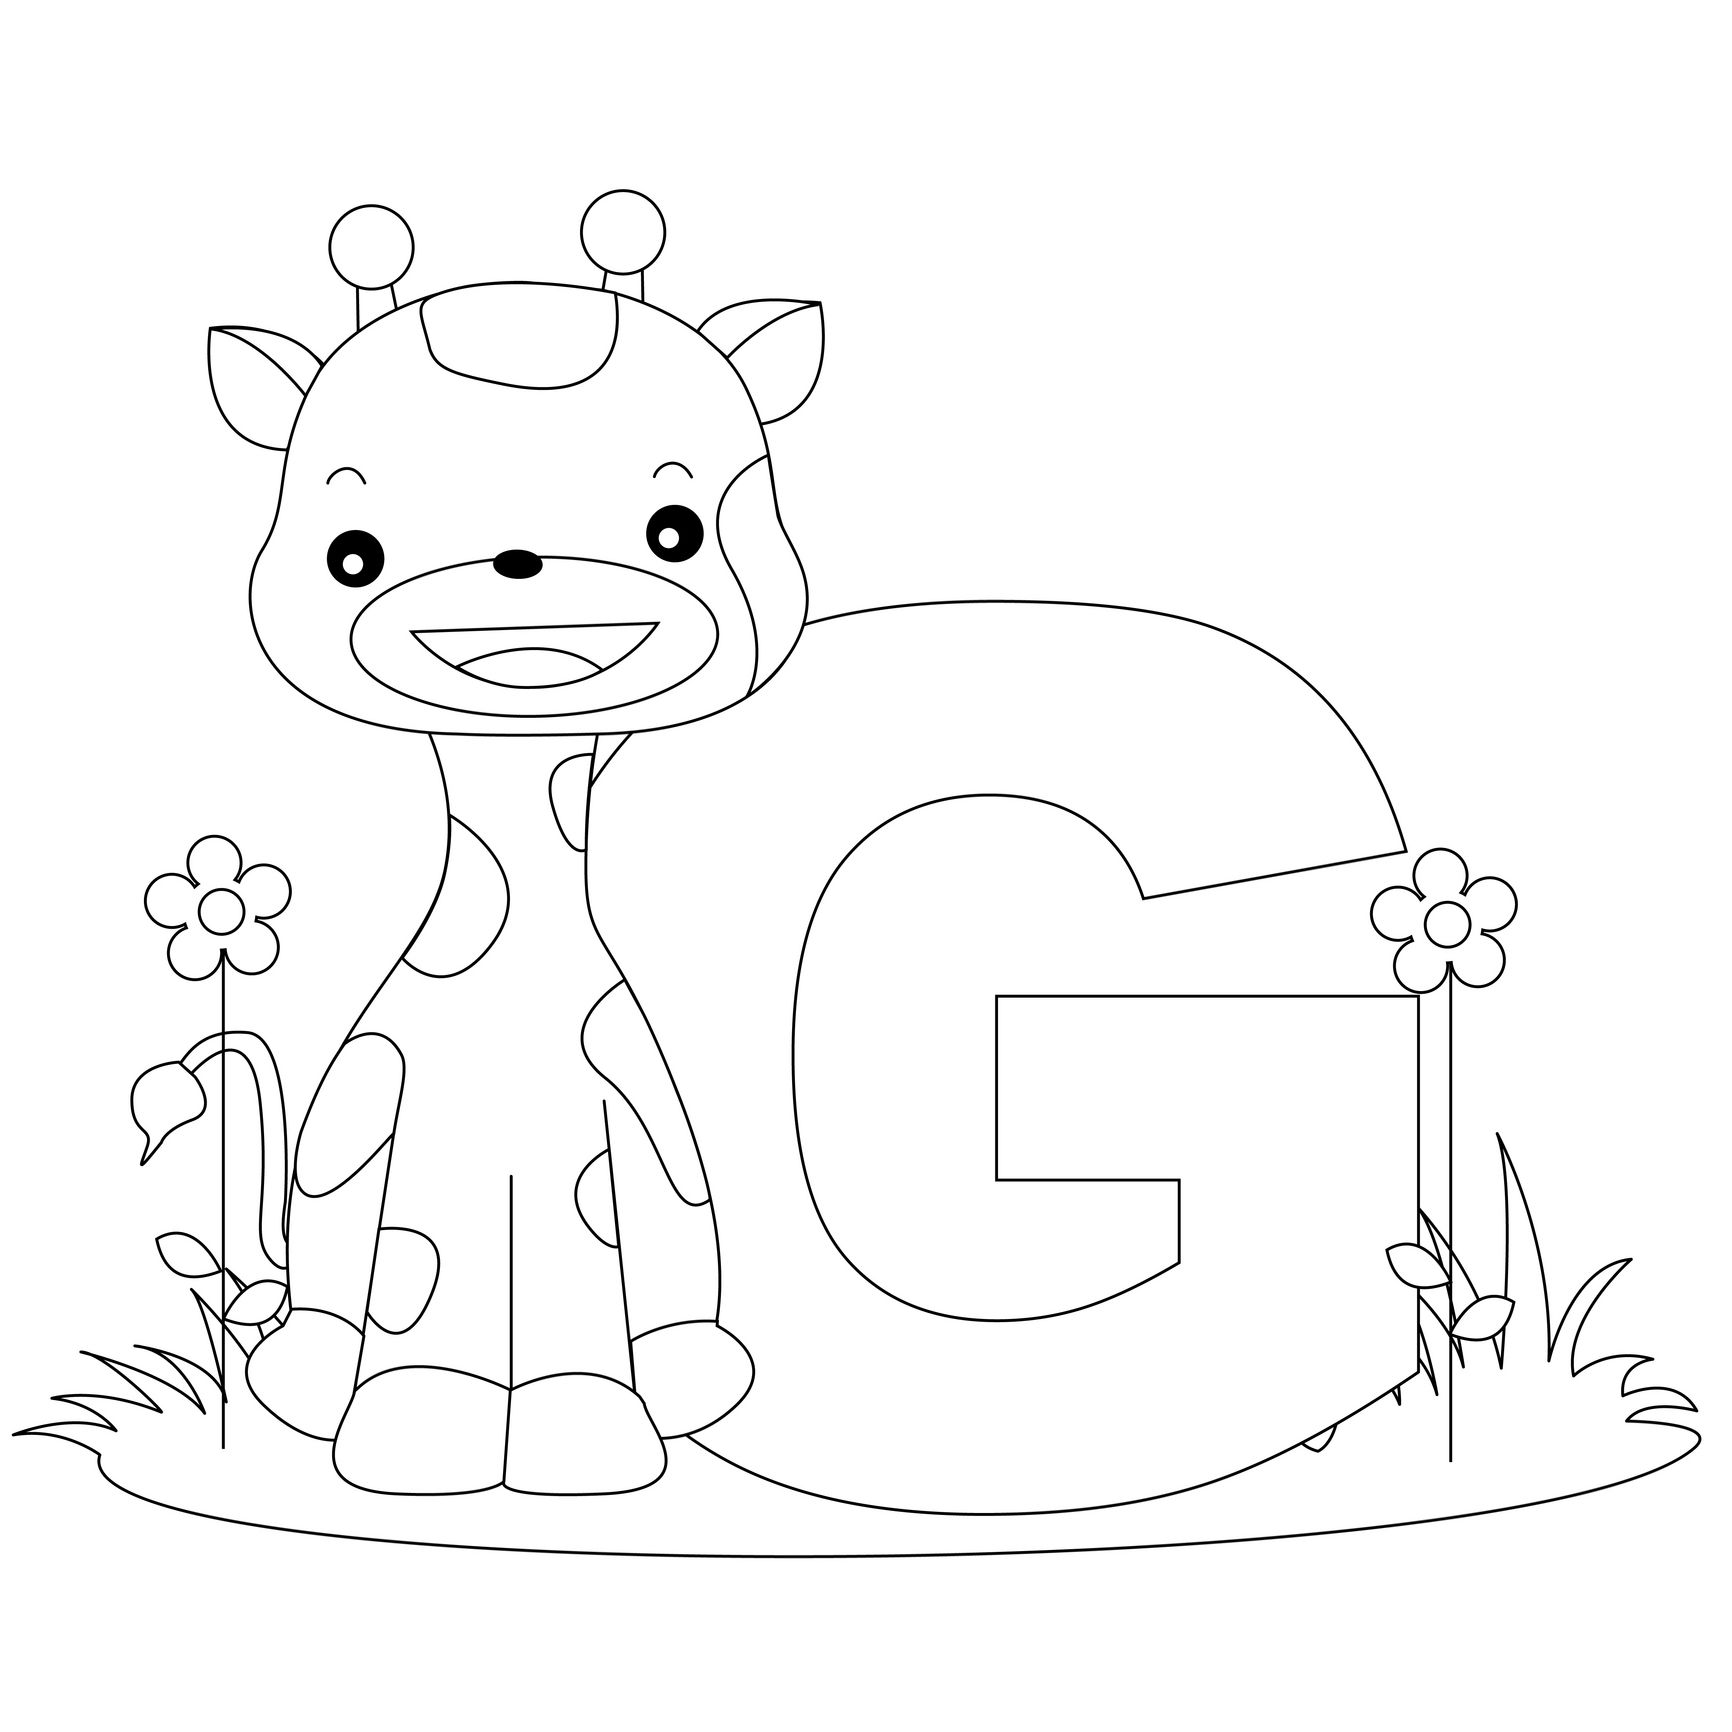 L sound coloring pages - Animal Alphabet Letter G Is For Giraffe Here S A Simple Alphabet Coloring Pagescoloring